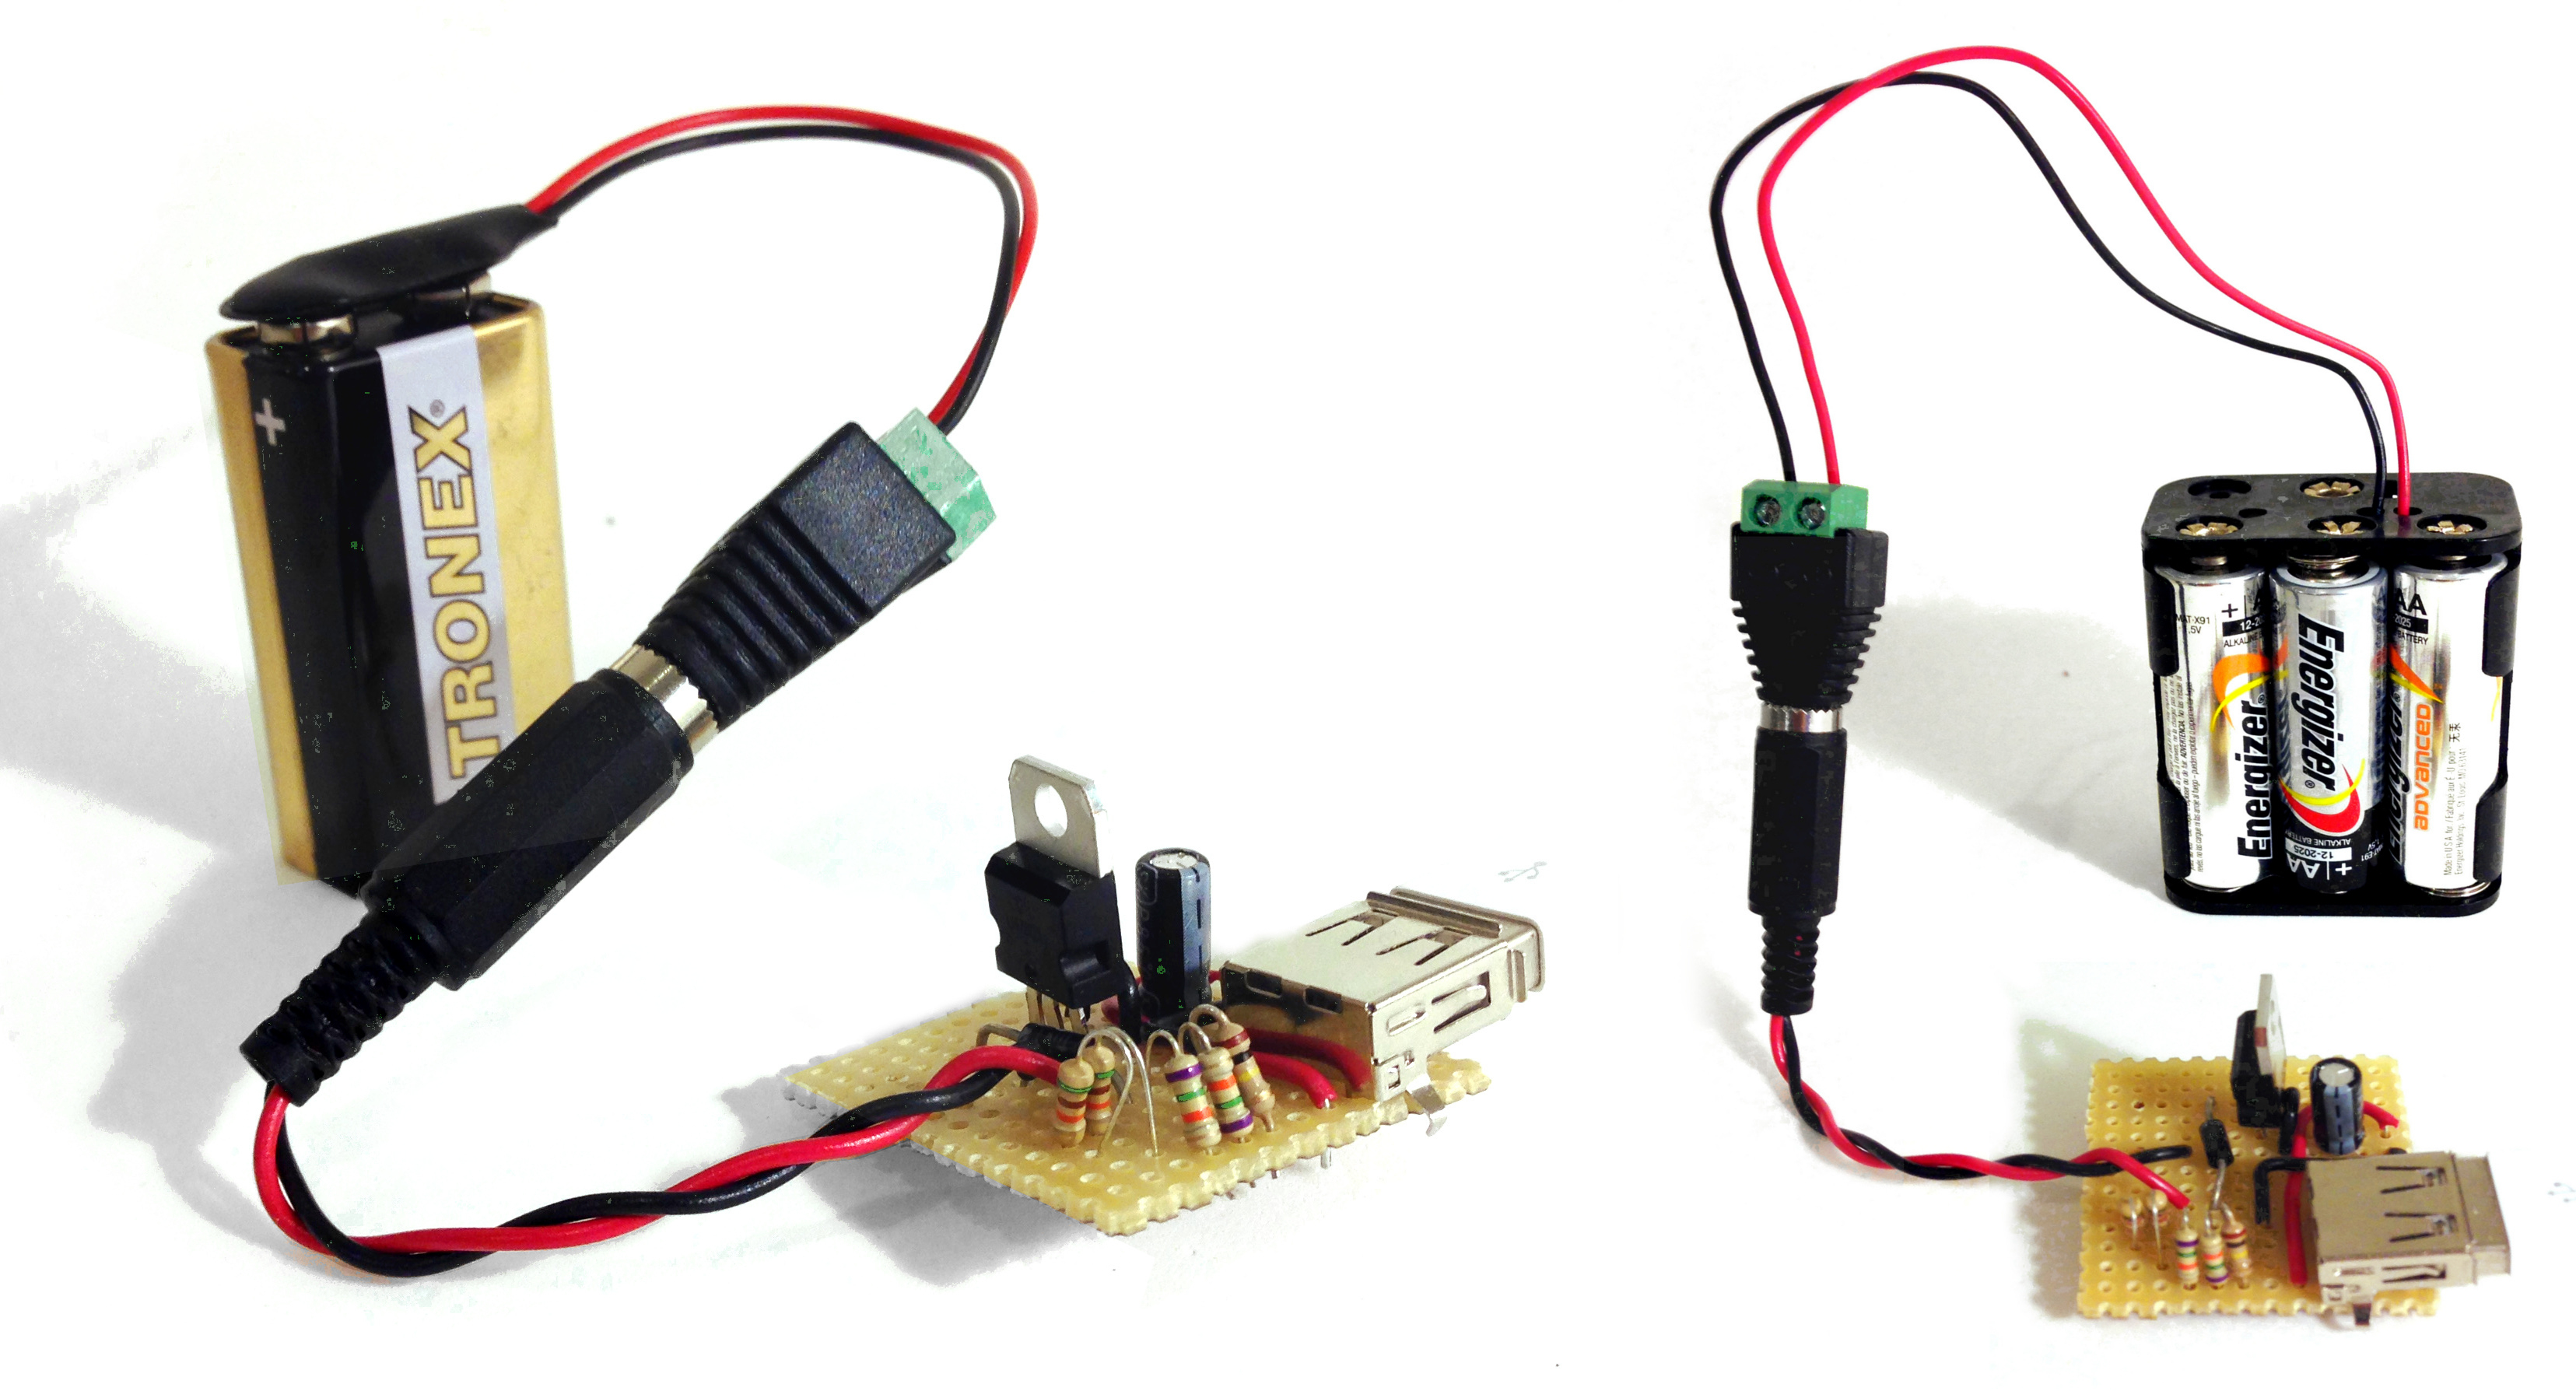 Portable Usb Charger Circuit - Build Electronic Circuits - Wiring Diagram To Go From Home Phone Jack To 5V Usb